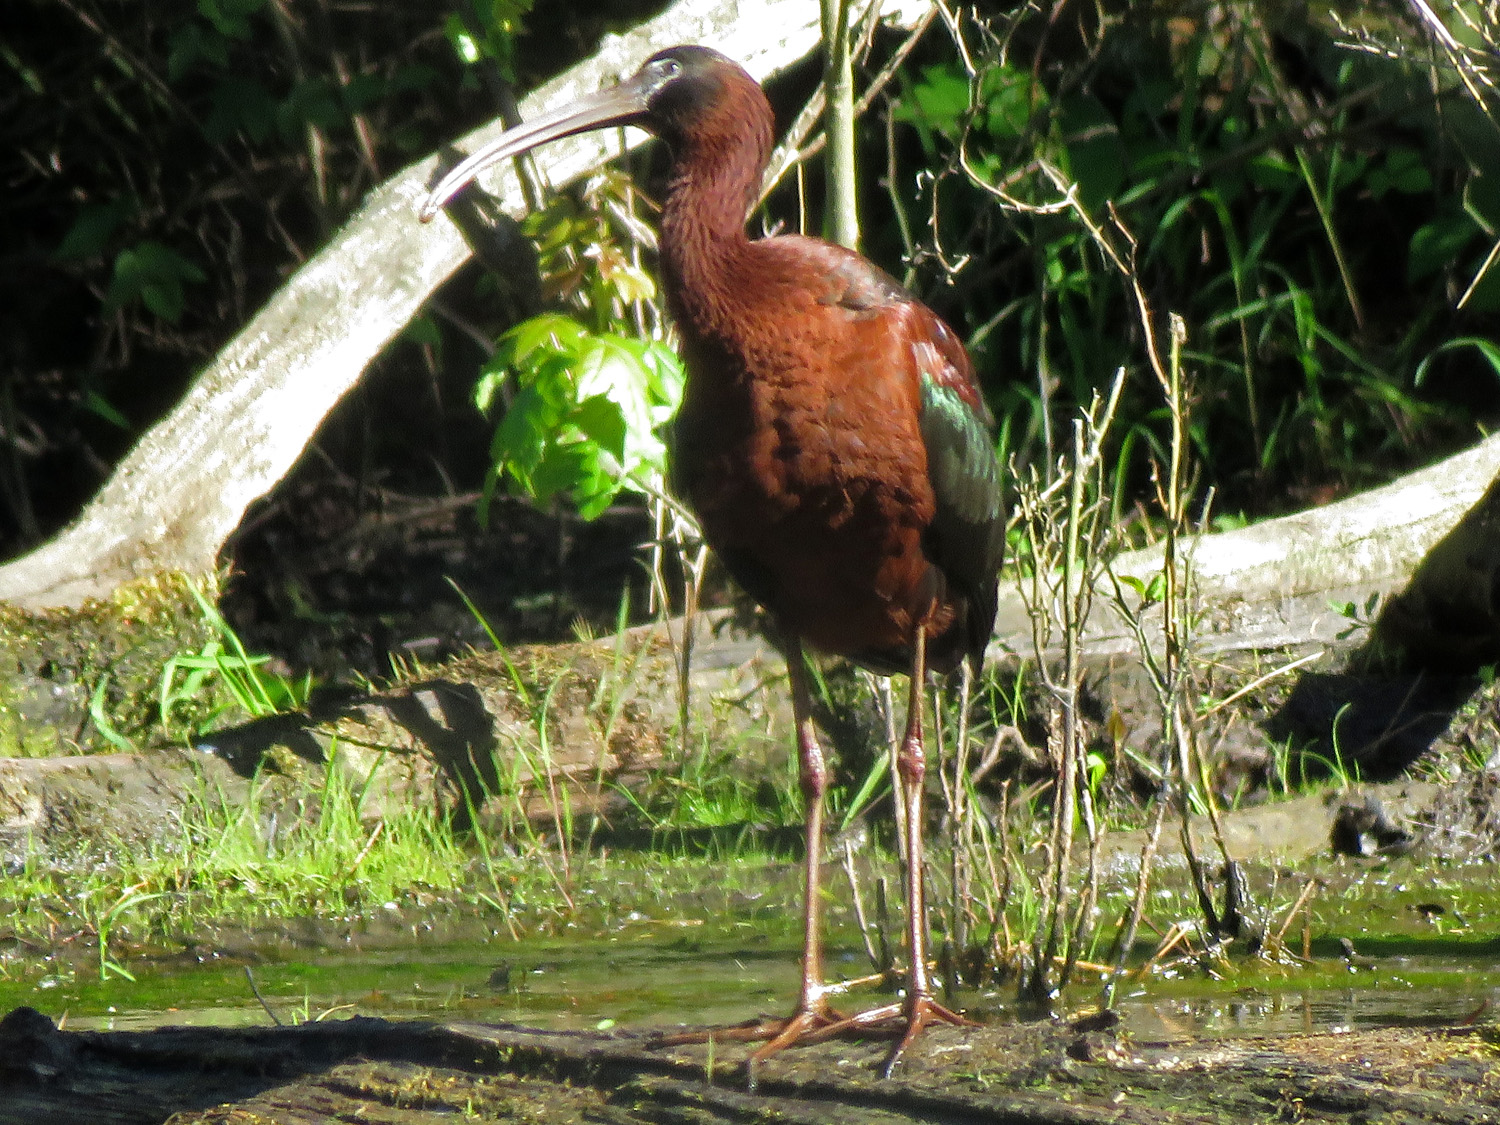 A glossy ibis at the snag pond, June 9, 2019, North Mount Loretto State Forest, Staten Island.